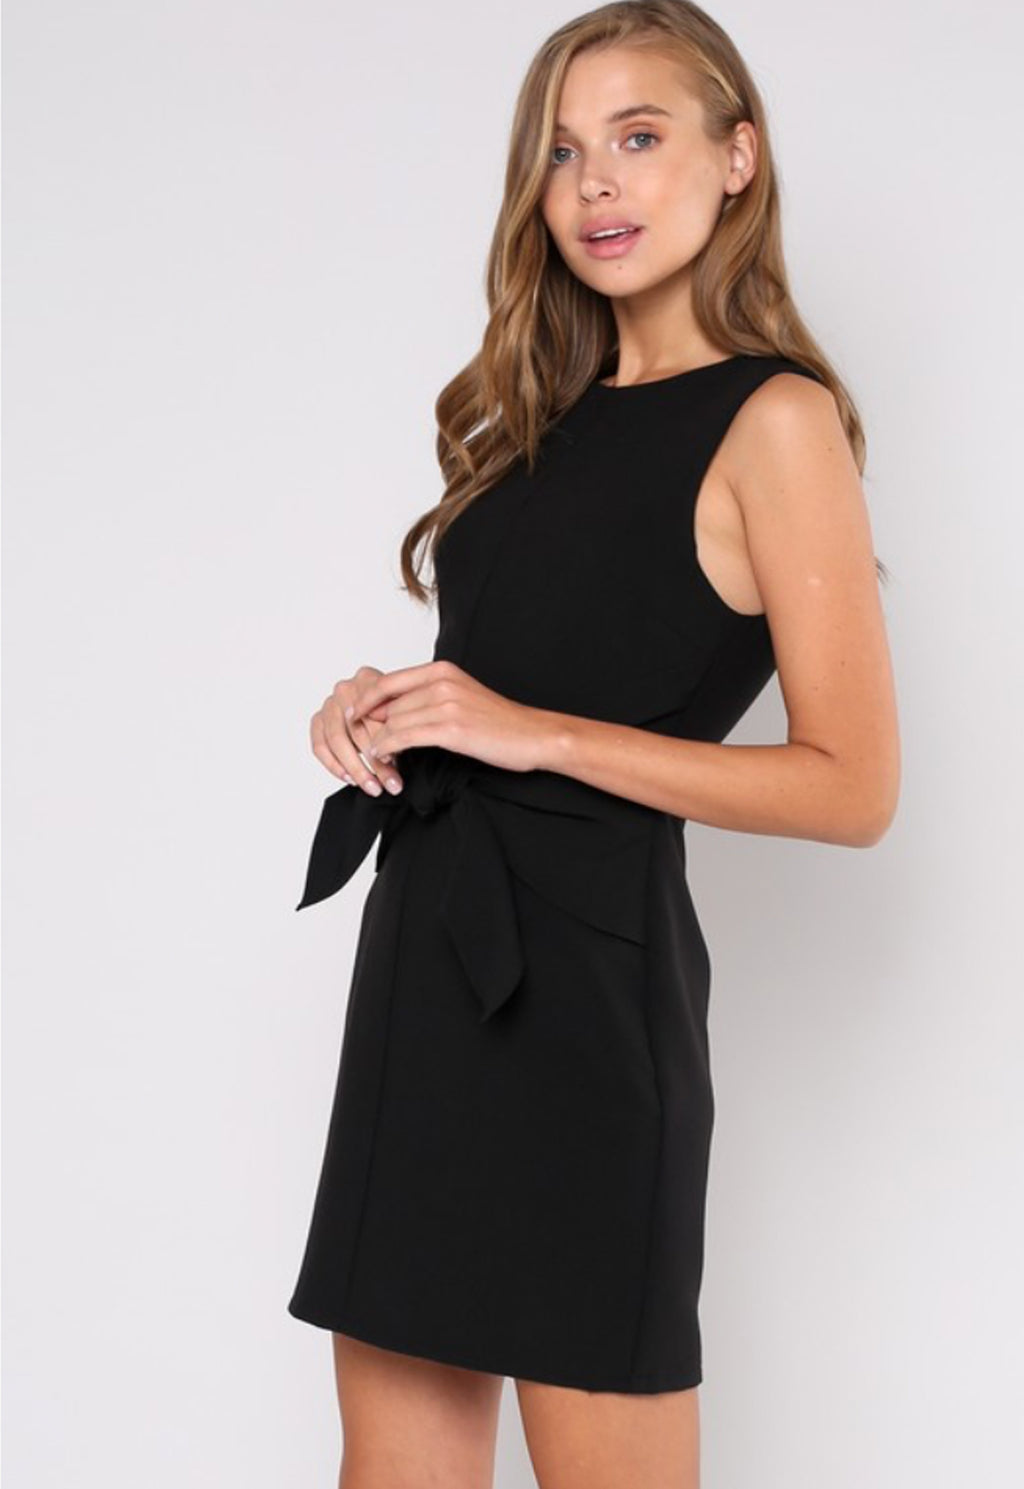 Ladies Cocktail Dress in Black with front tie at waist. By Do & Be